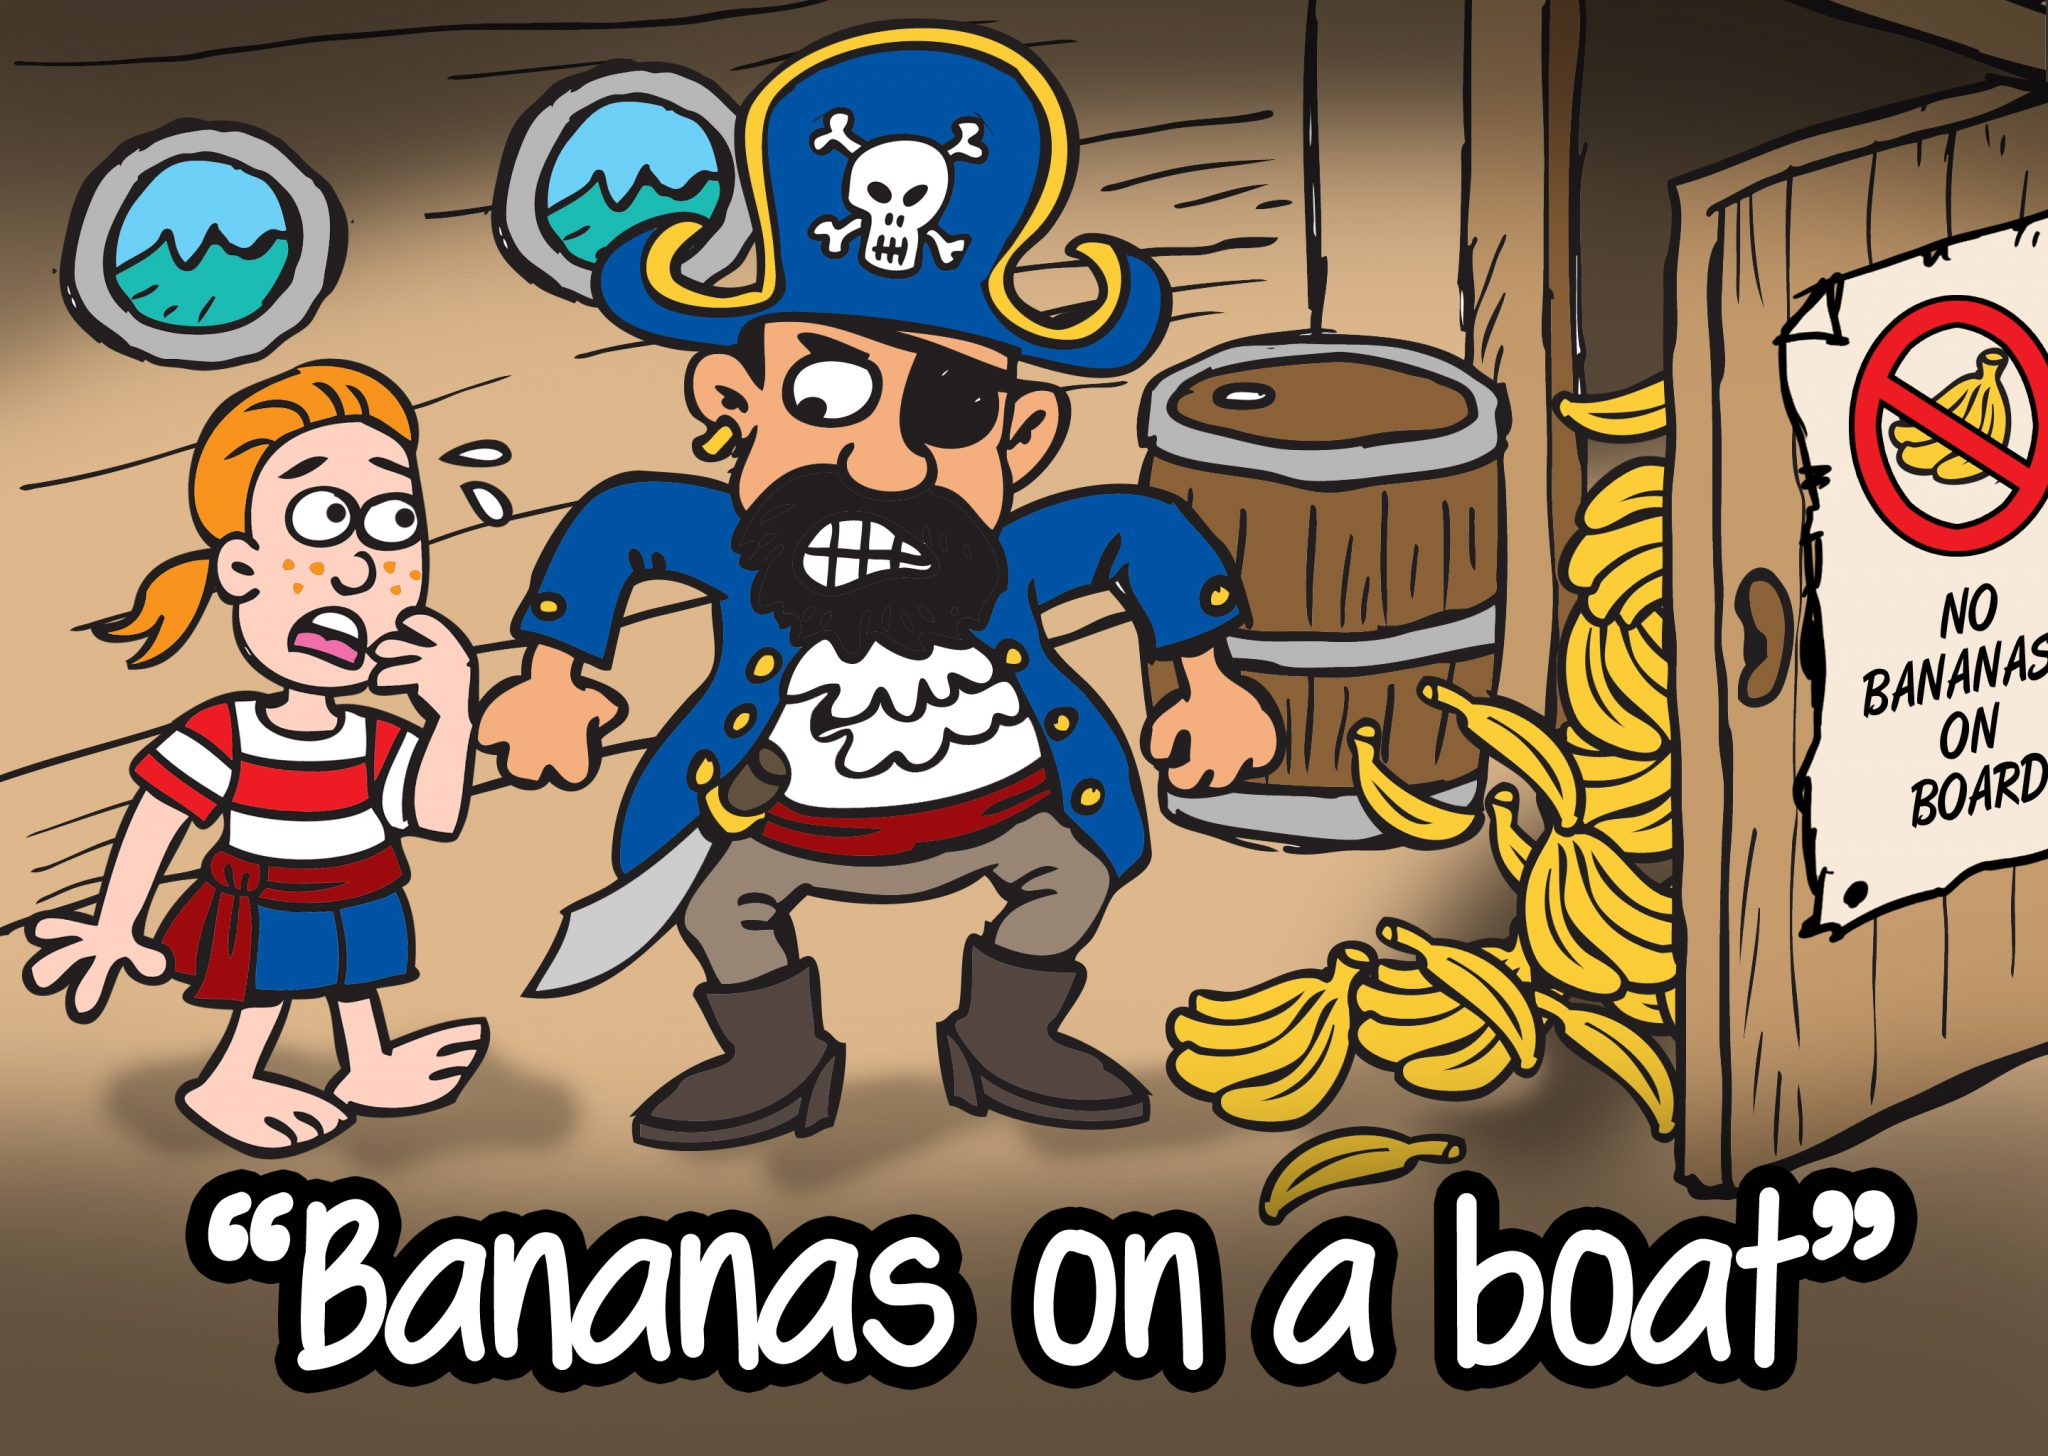 bananas-on-a-boat